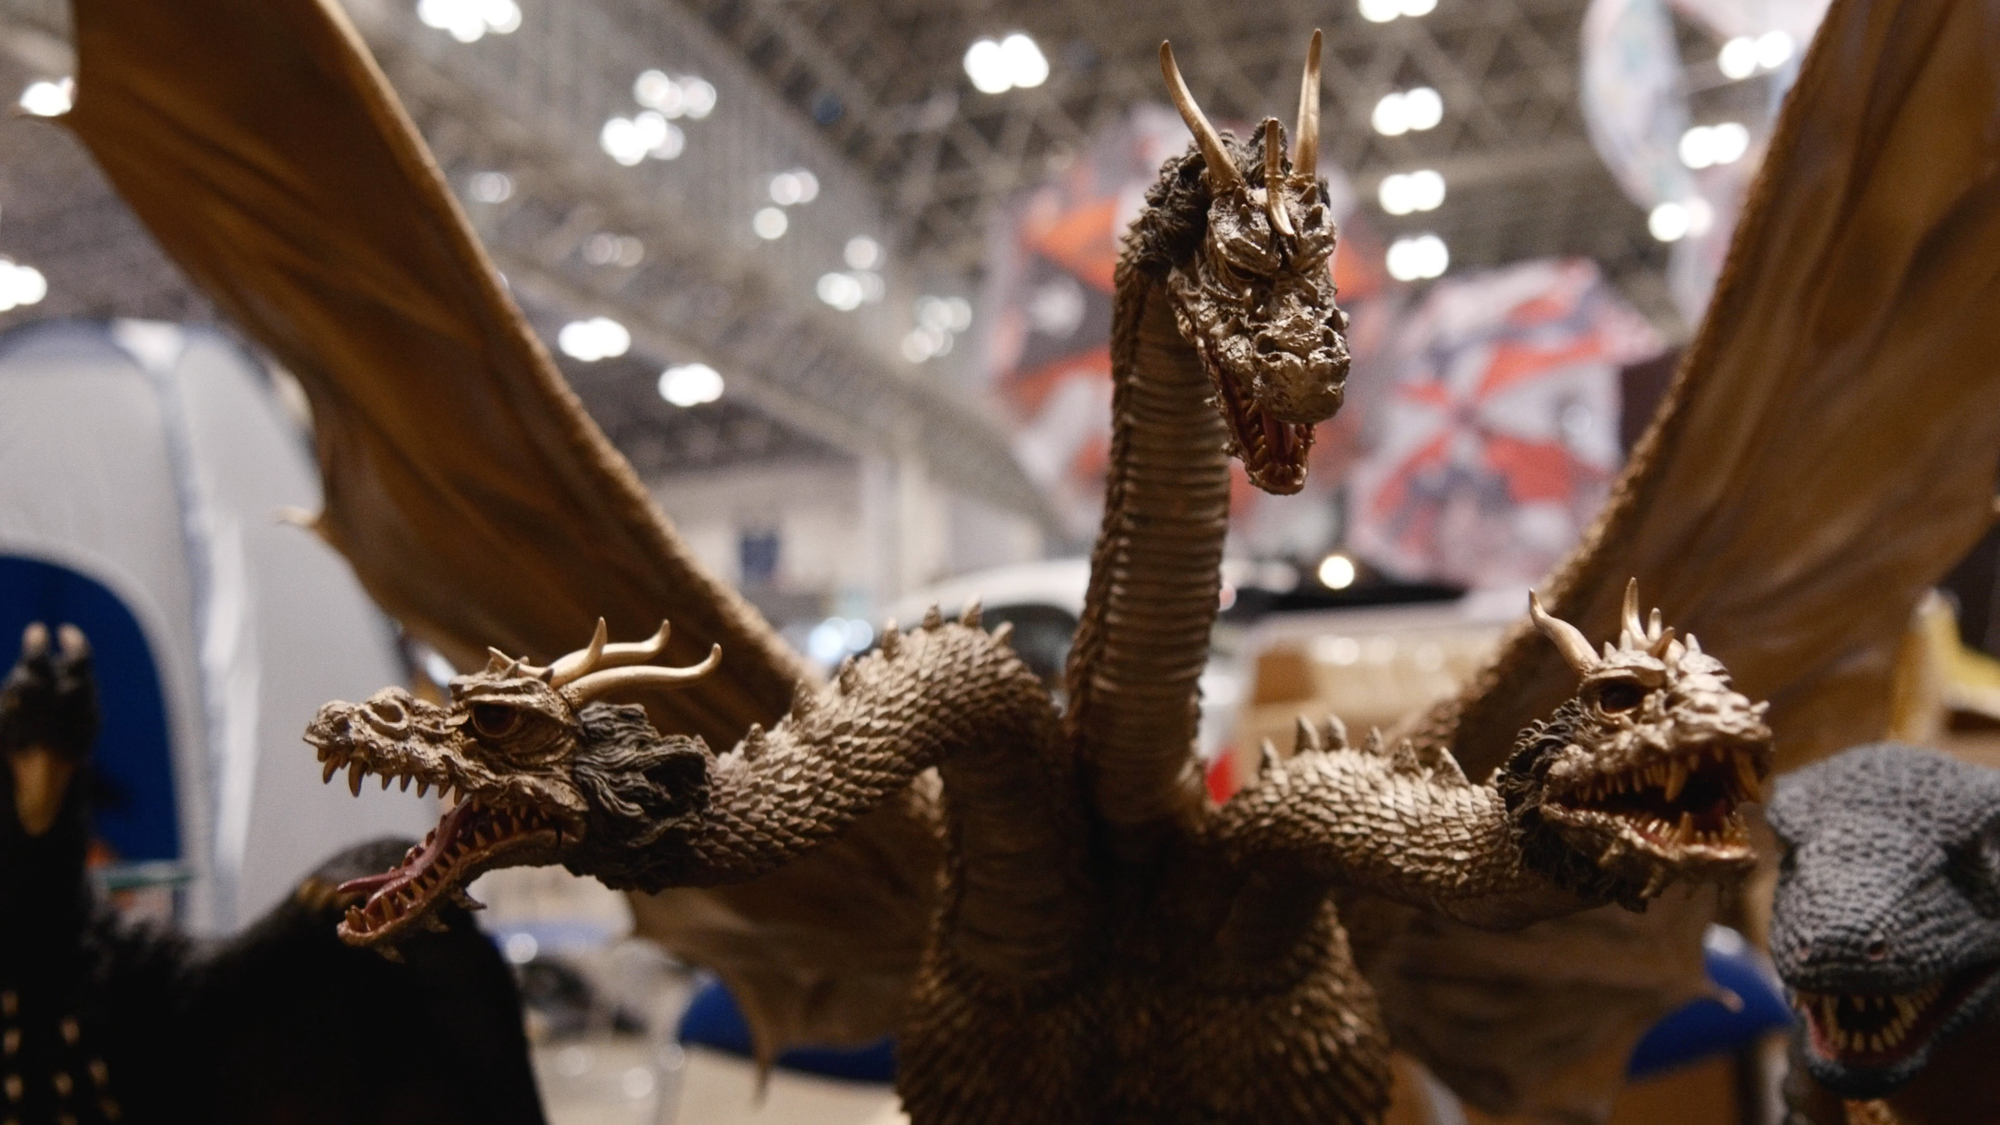 X-Plus Large Monster Series King Ghidorah vinyl figure at Summer Wonder Festival. Photo by SciFiJapan.com.